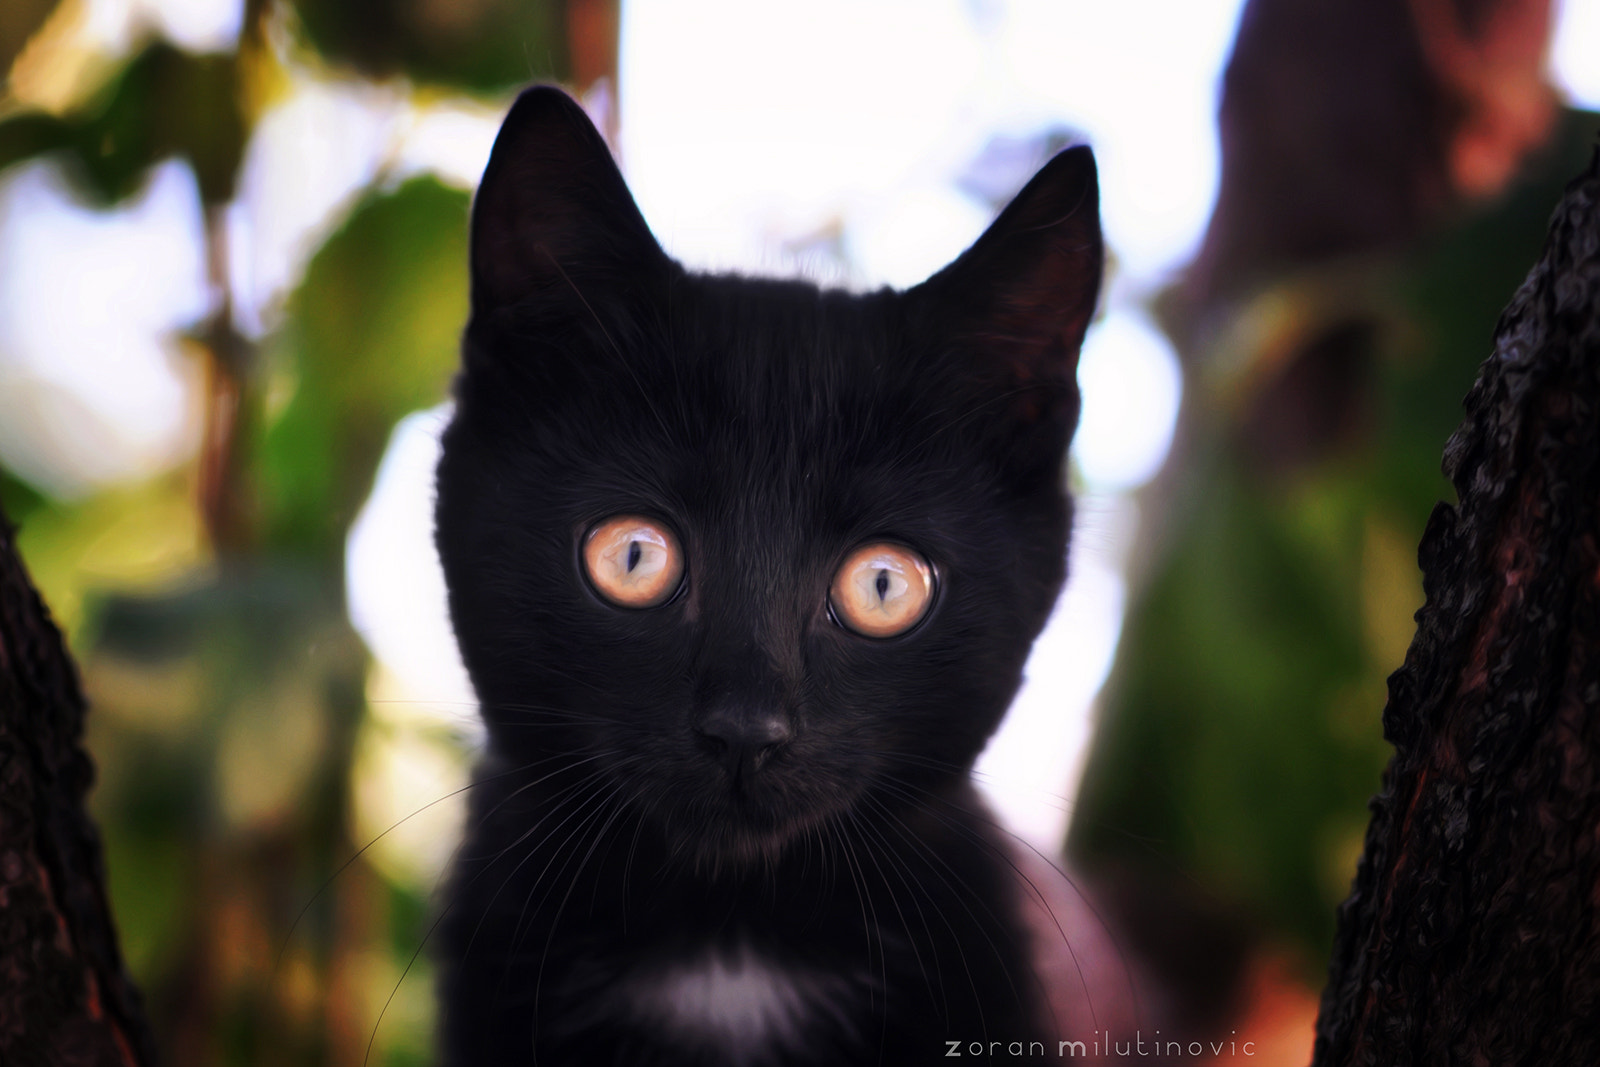 Photograph Glowing eyes by Zoran Milutinovic on 500px